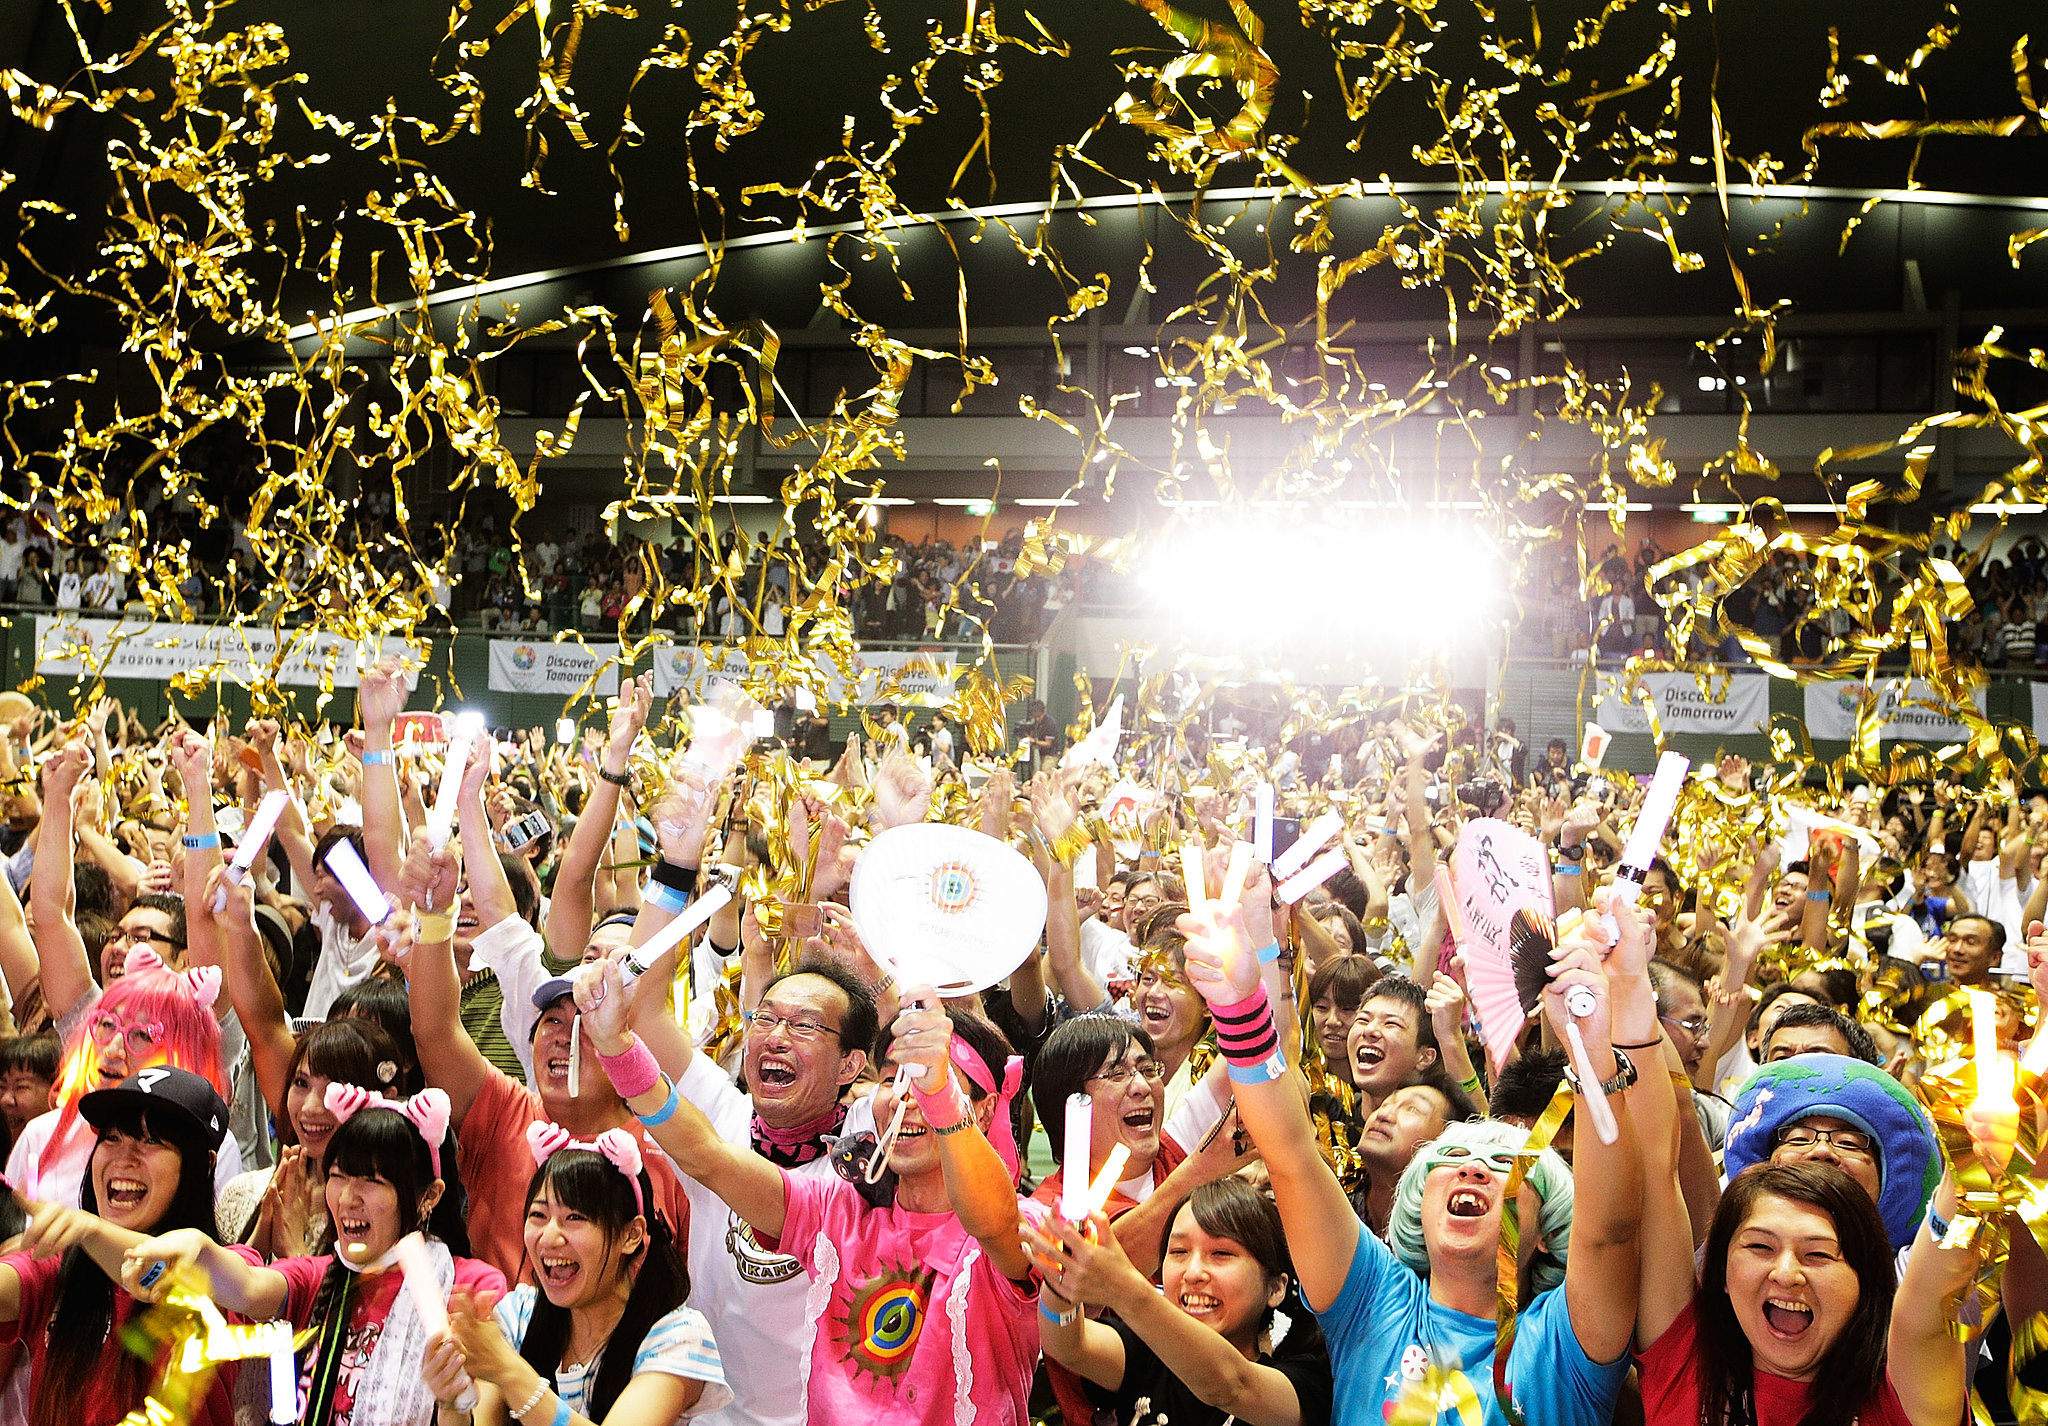 More confetti! More cheering!